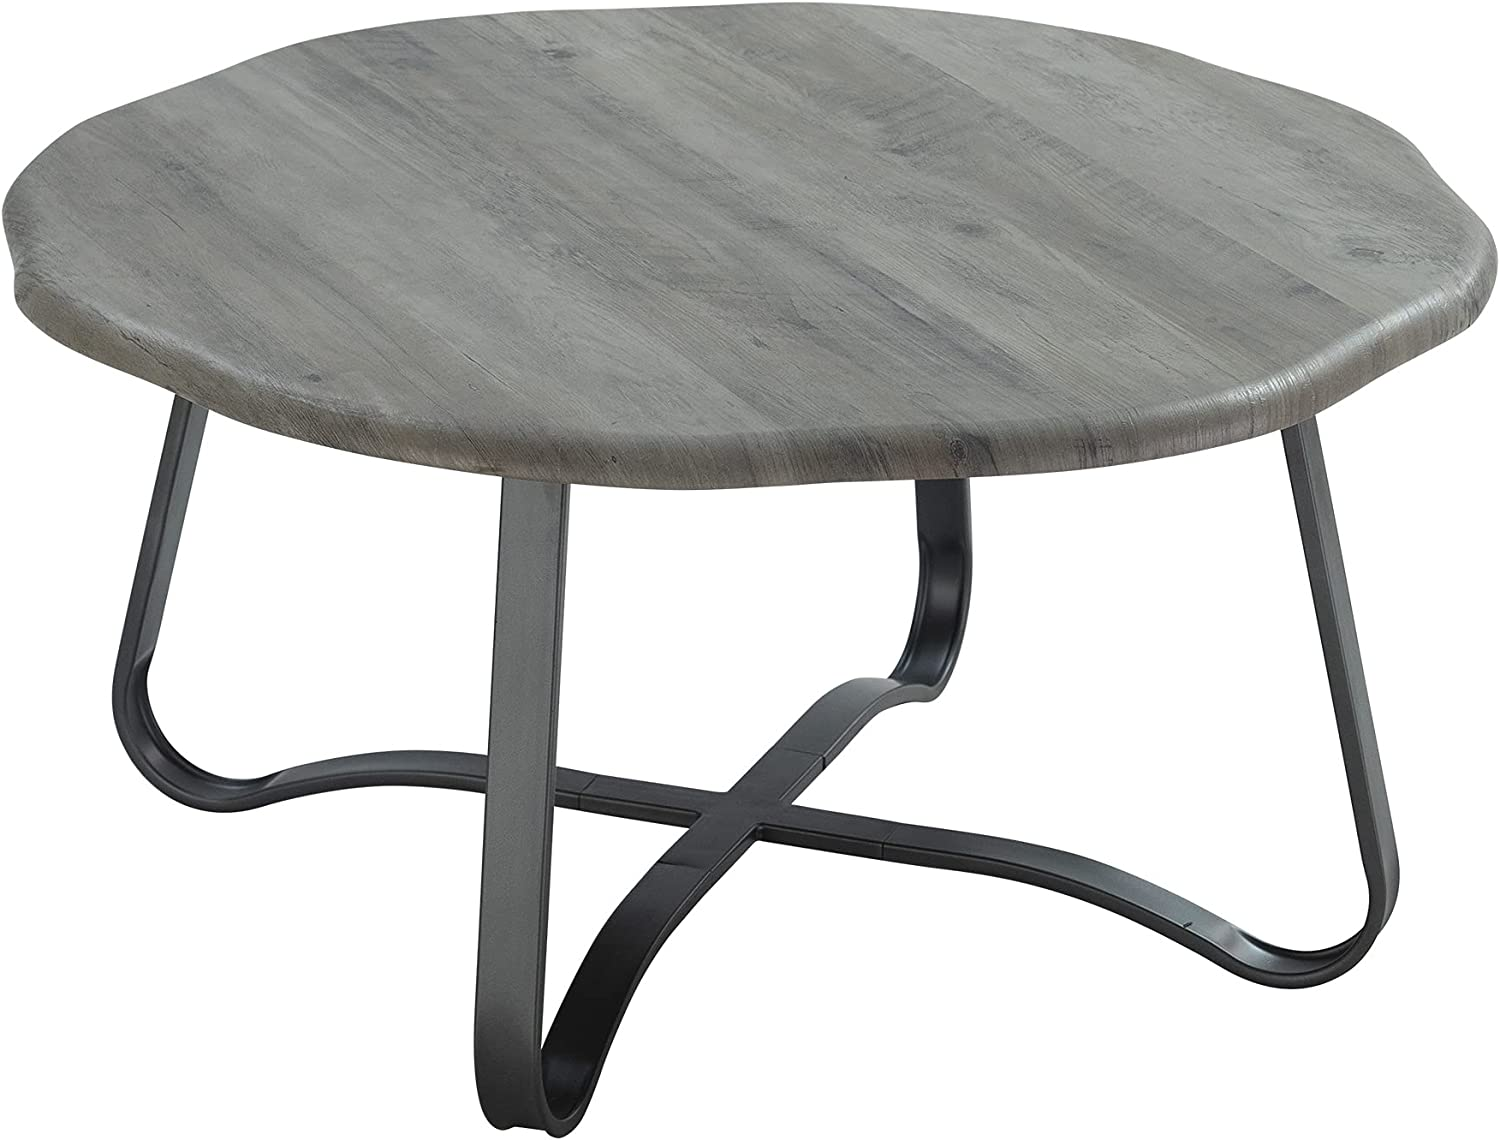 """FINECASA Accent Coffee Table, Irregular Table Top Coffee Table with Cross Rack, Sofa Table, Office Table, Cocktail Table, Center Tables for Living Room Reception Room, 35.4""""Dx18.1""""H, Grey"""